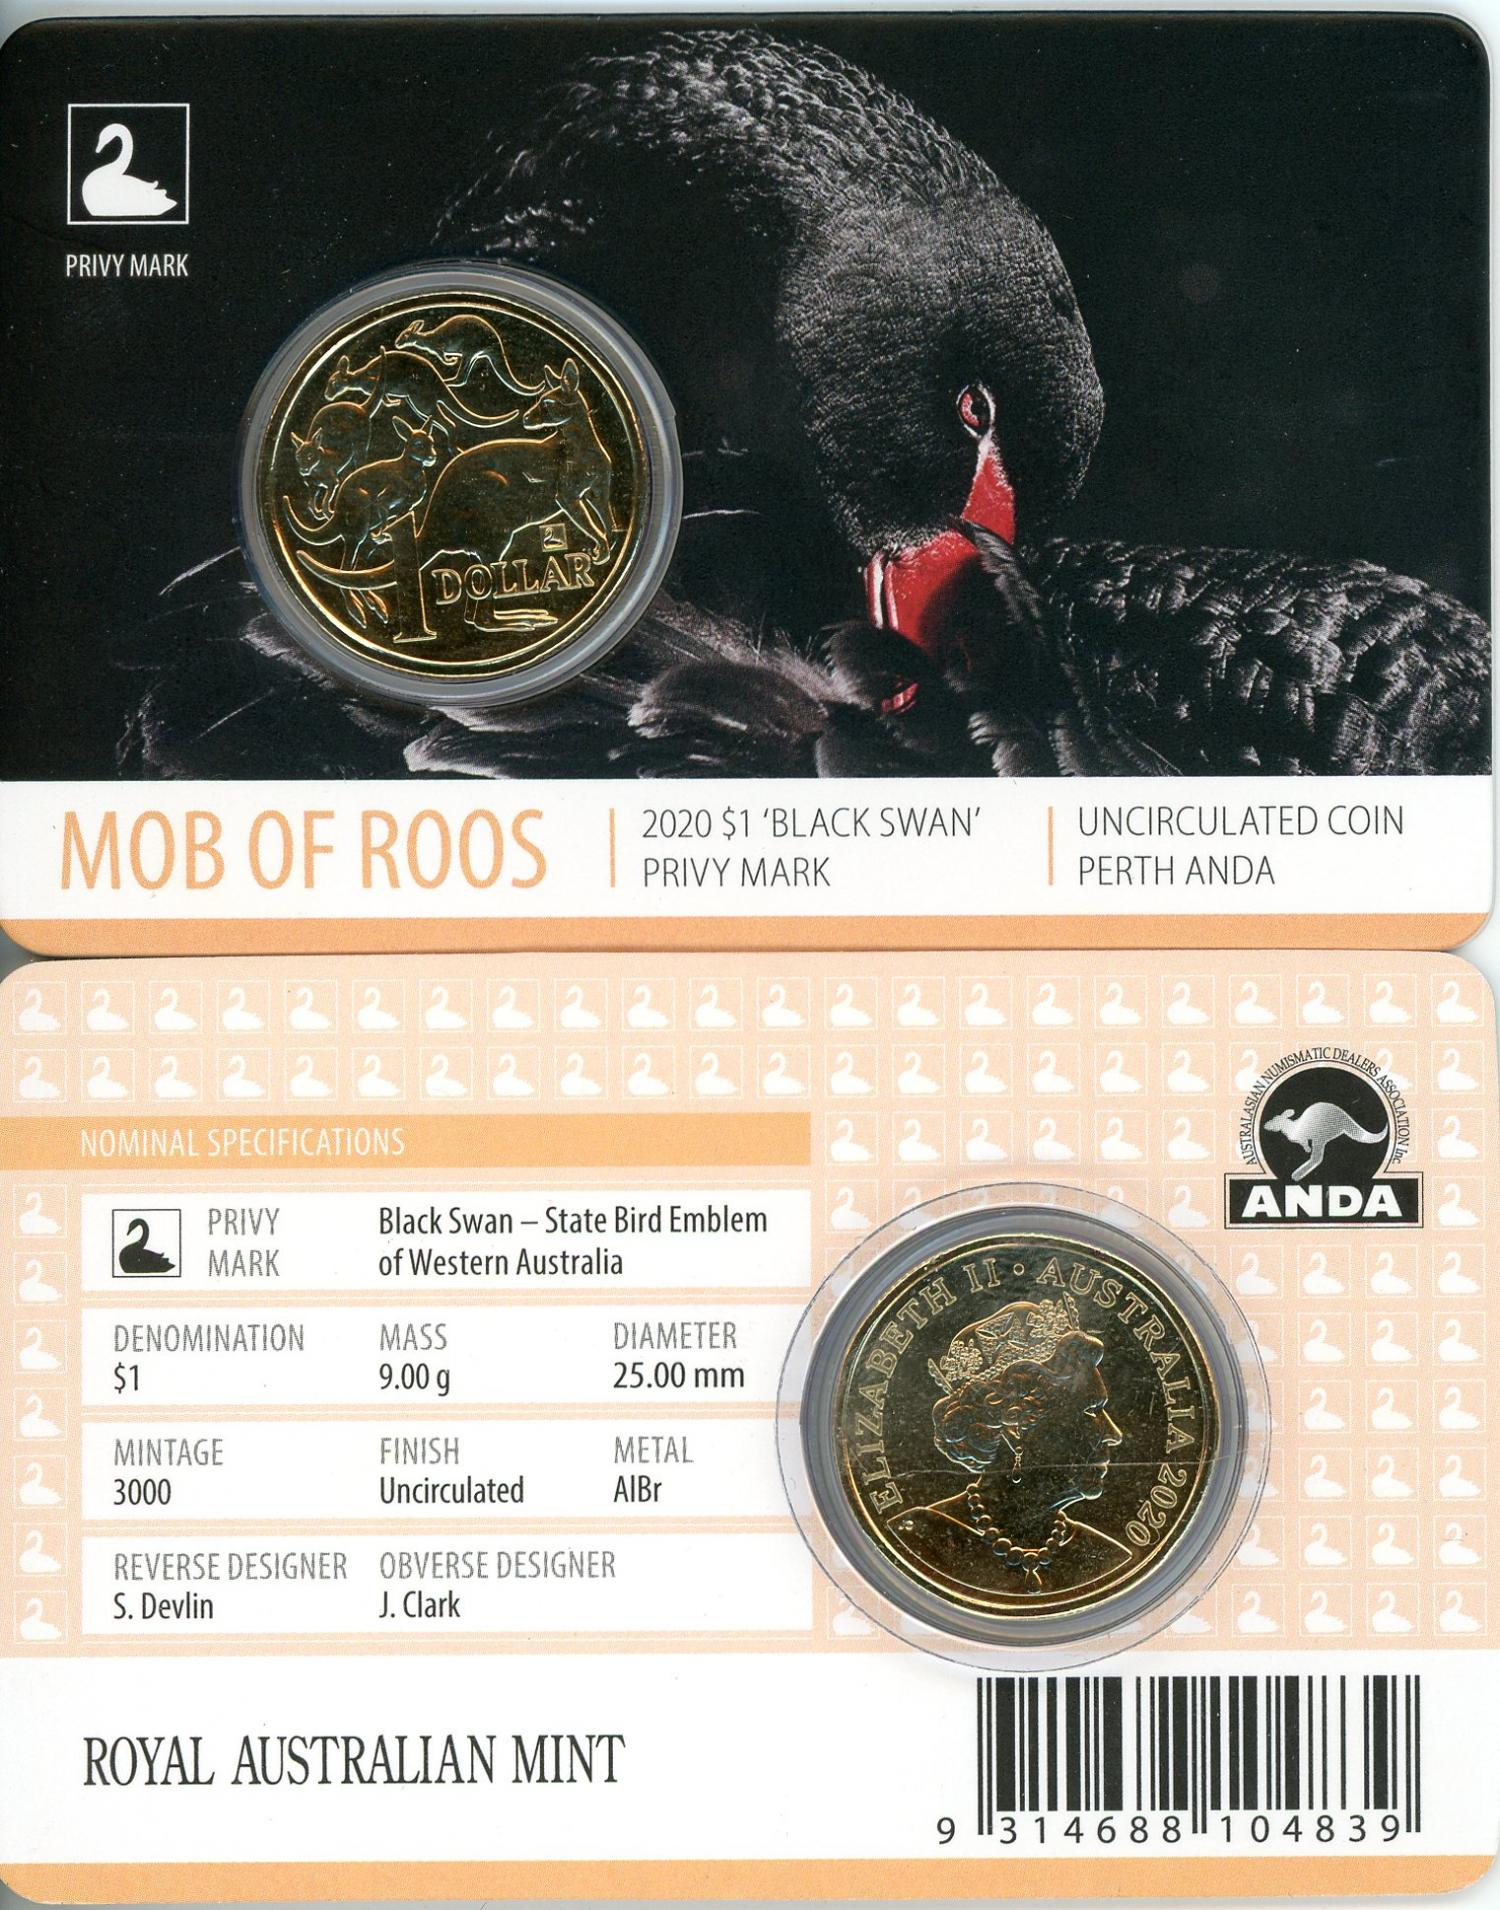 Thumbnail for 2020 Mob of Roos $1 with Black Swan Privy Mark Perth ANDA